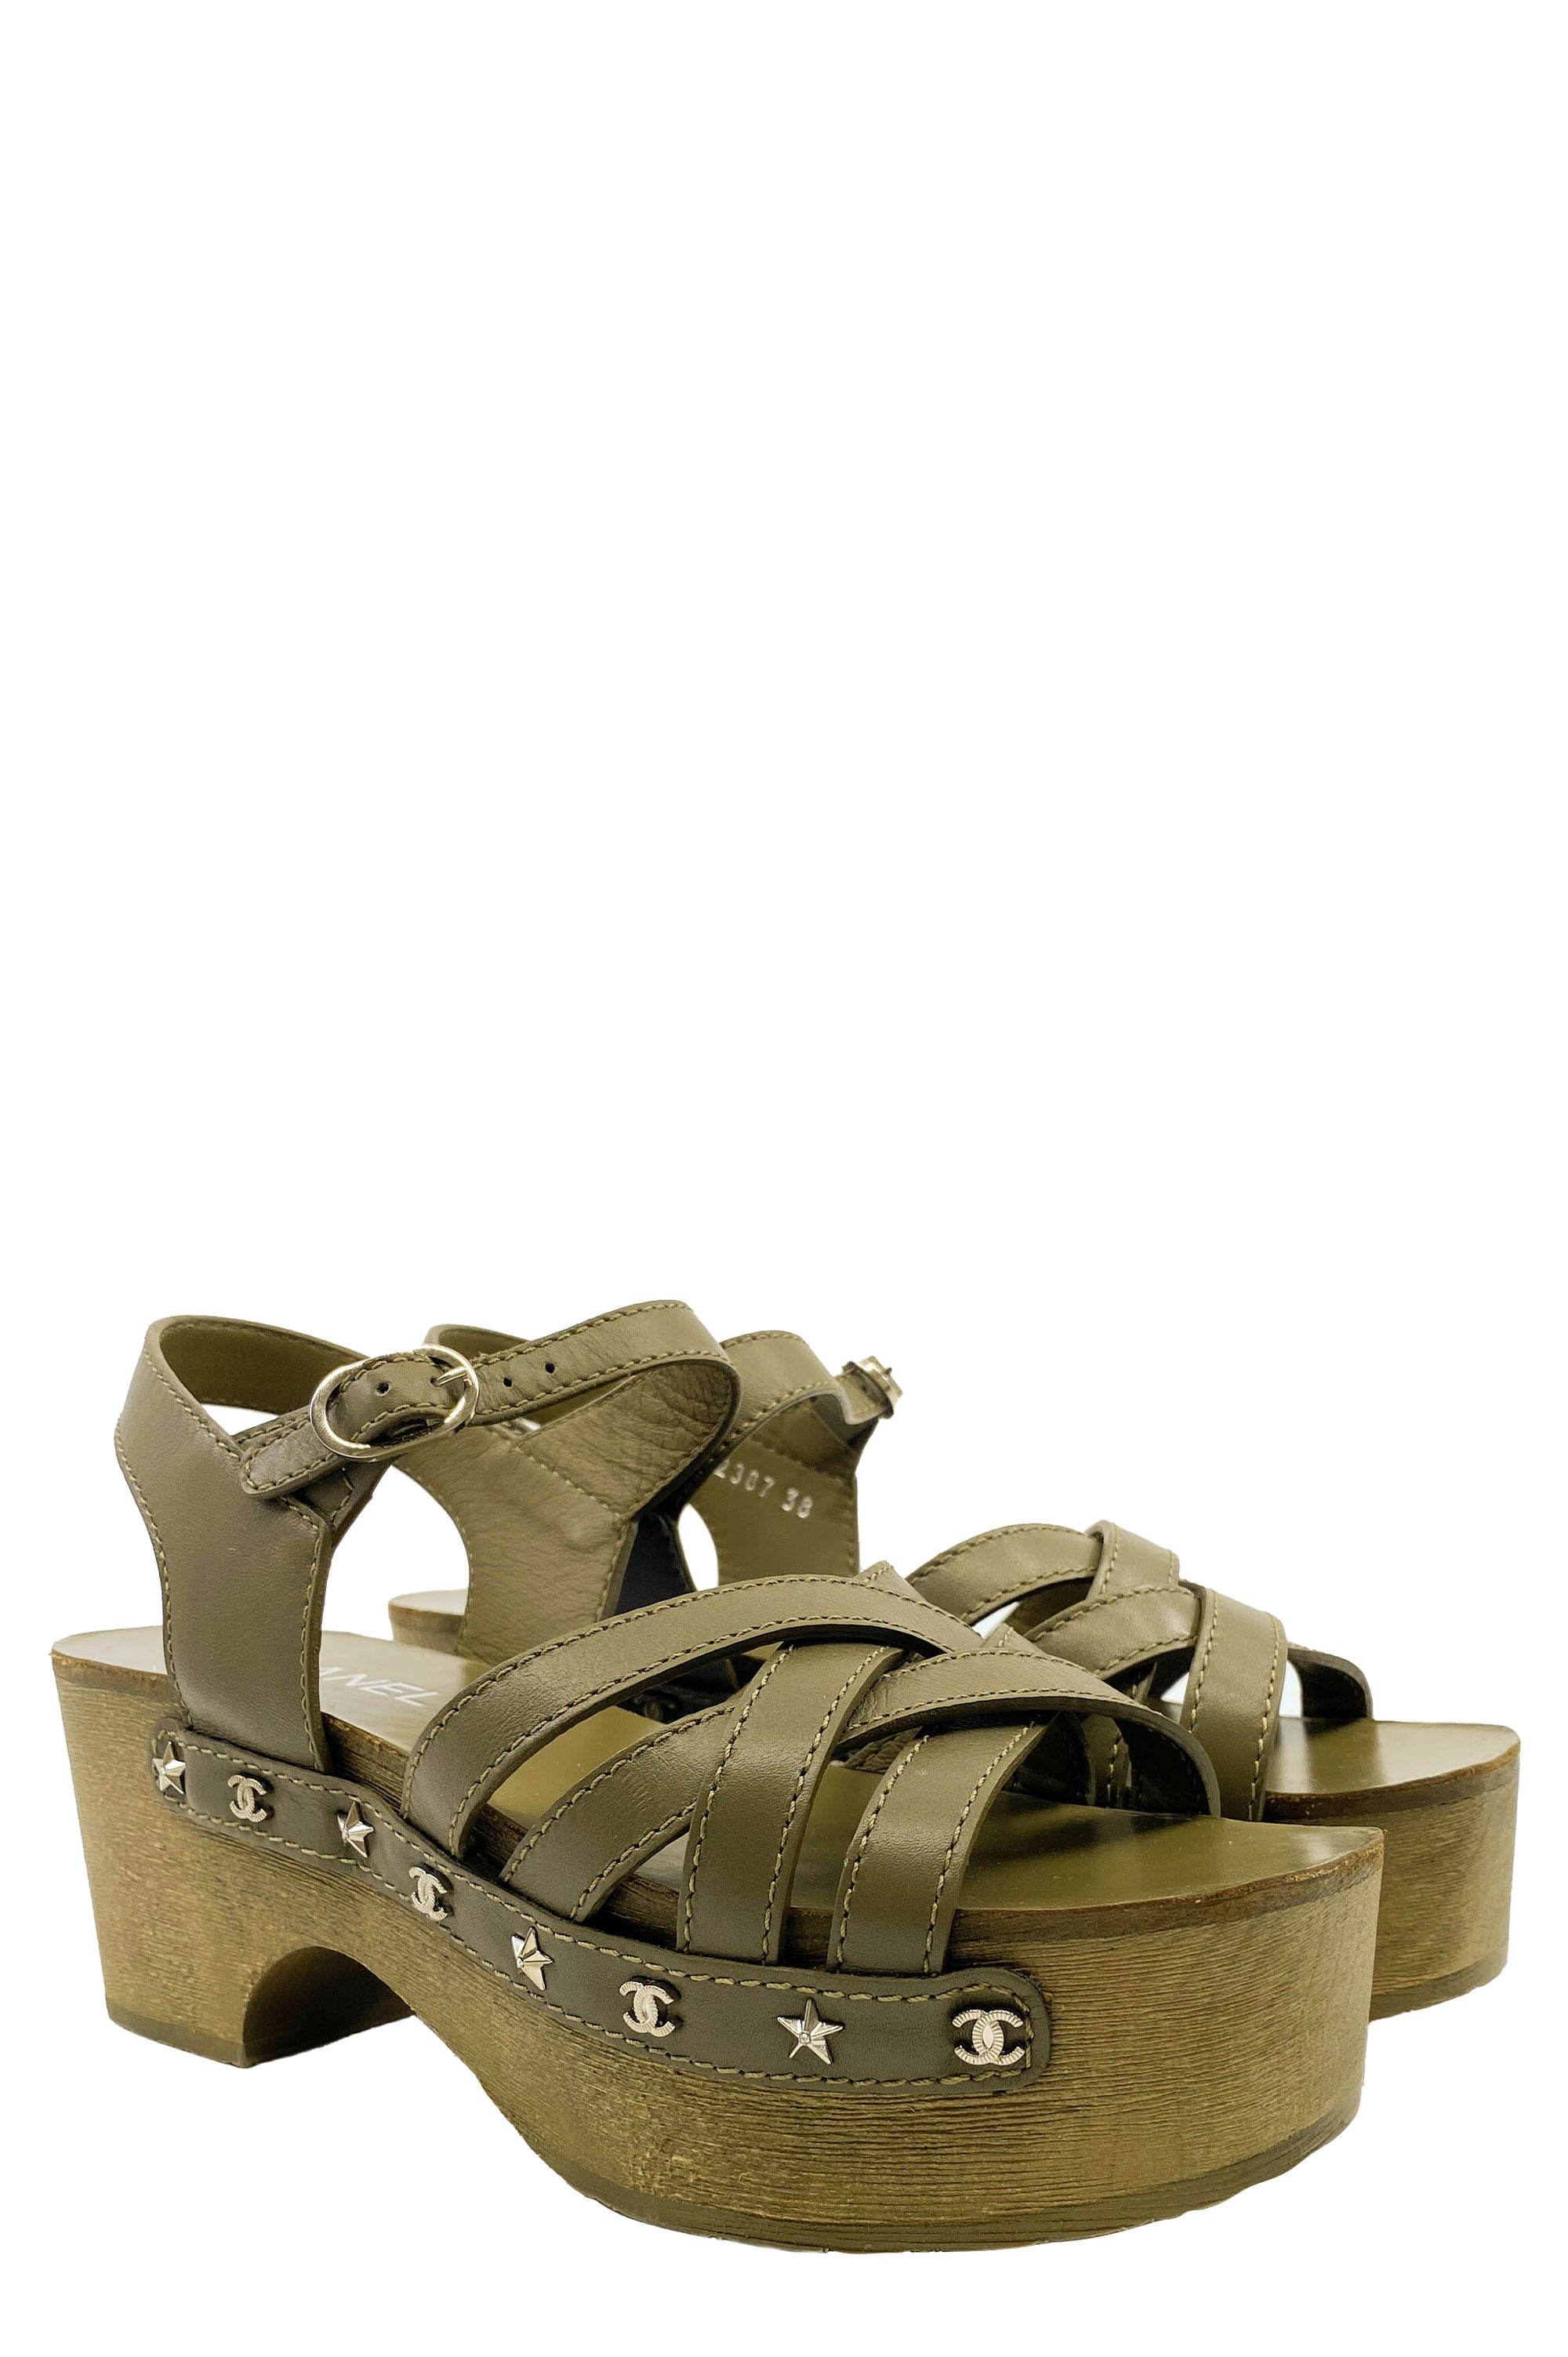 CHANEL Sandal Clogs Green